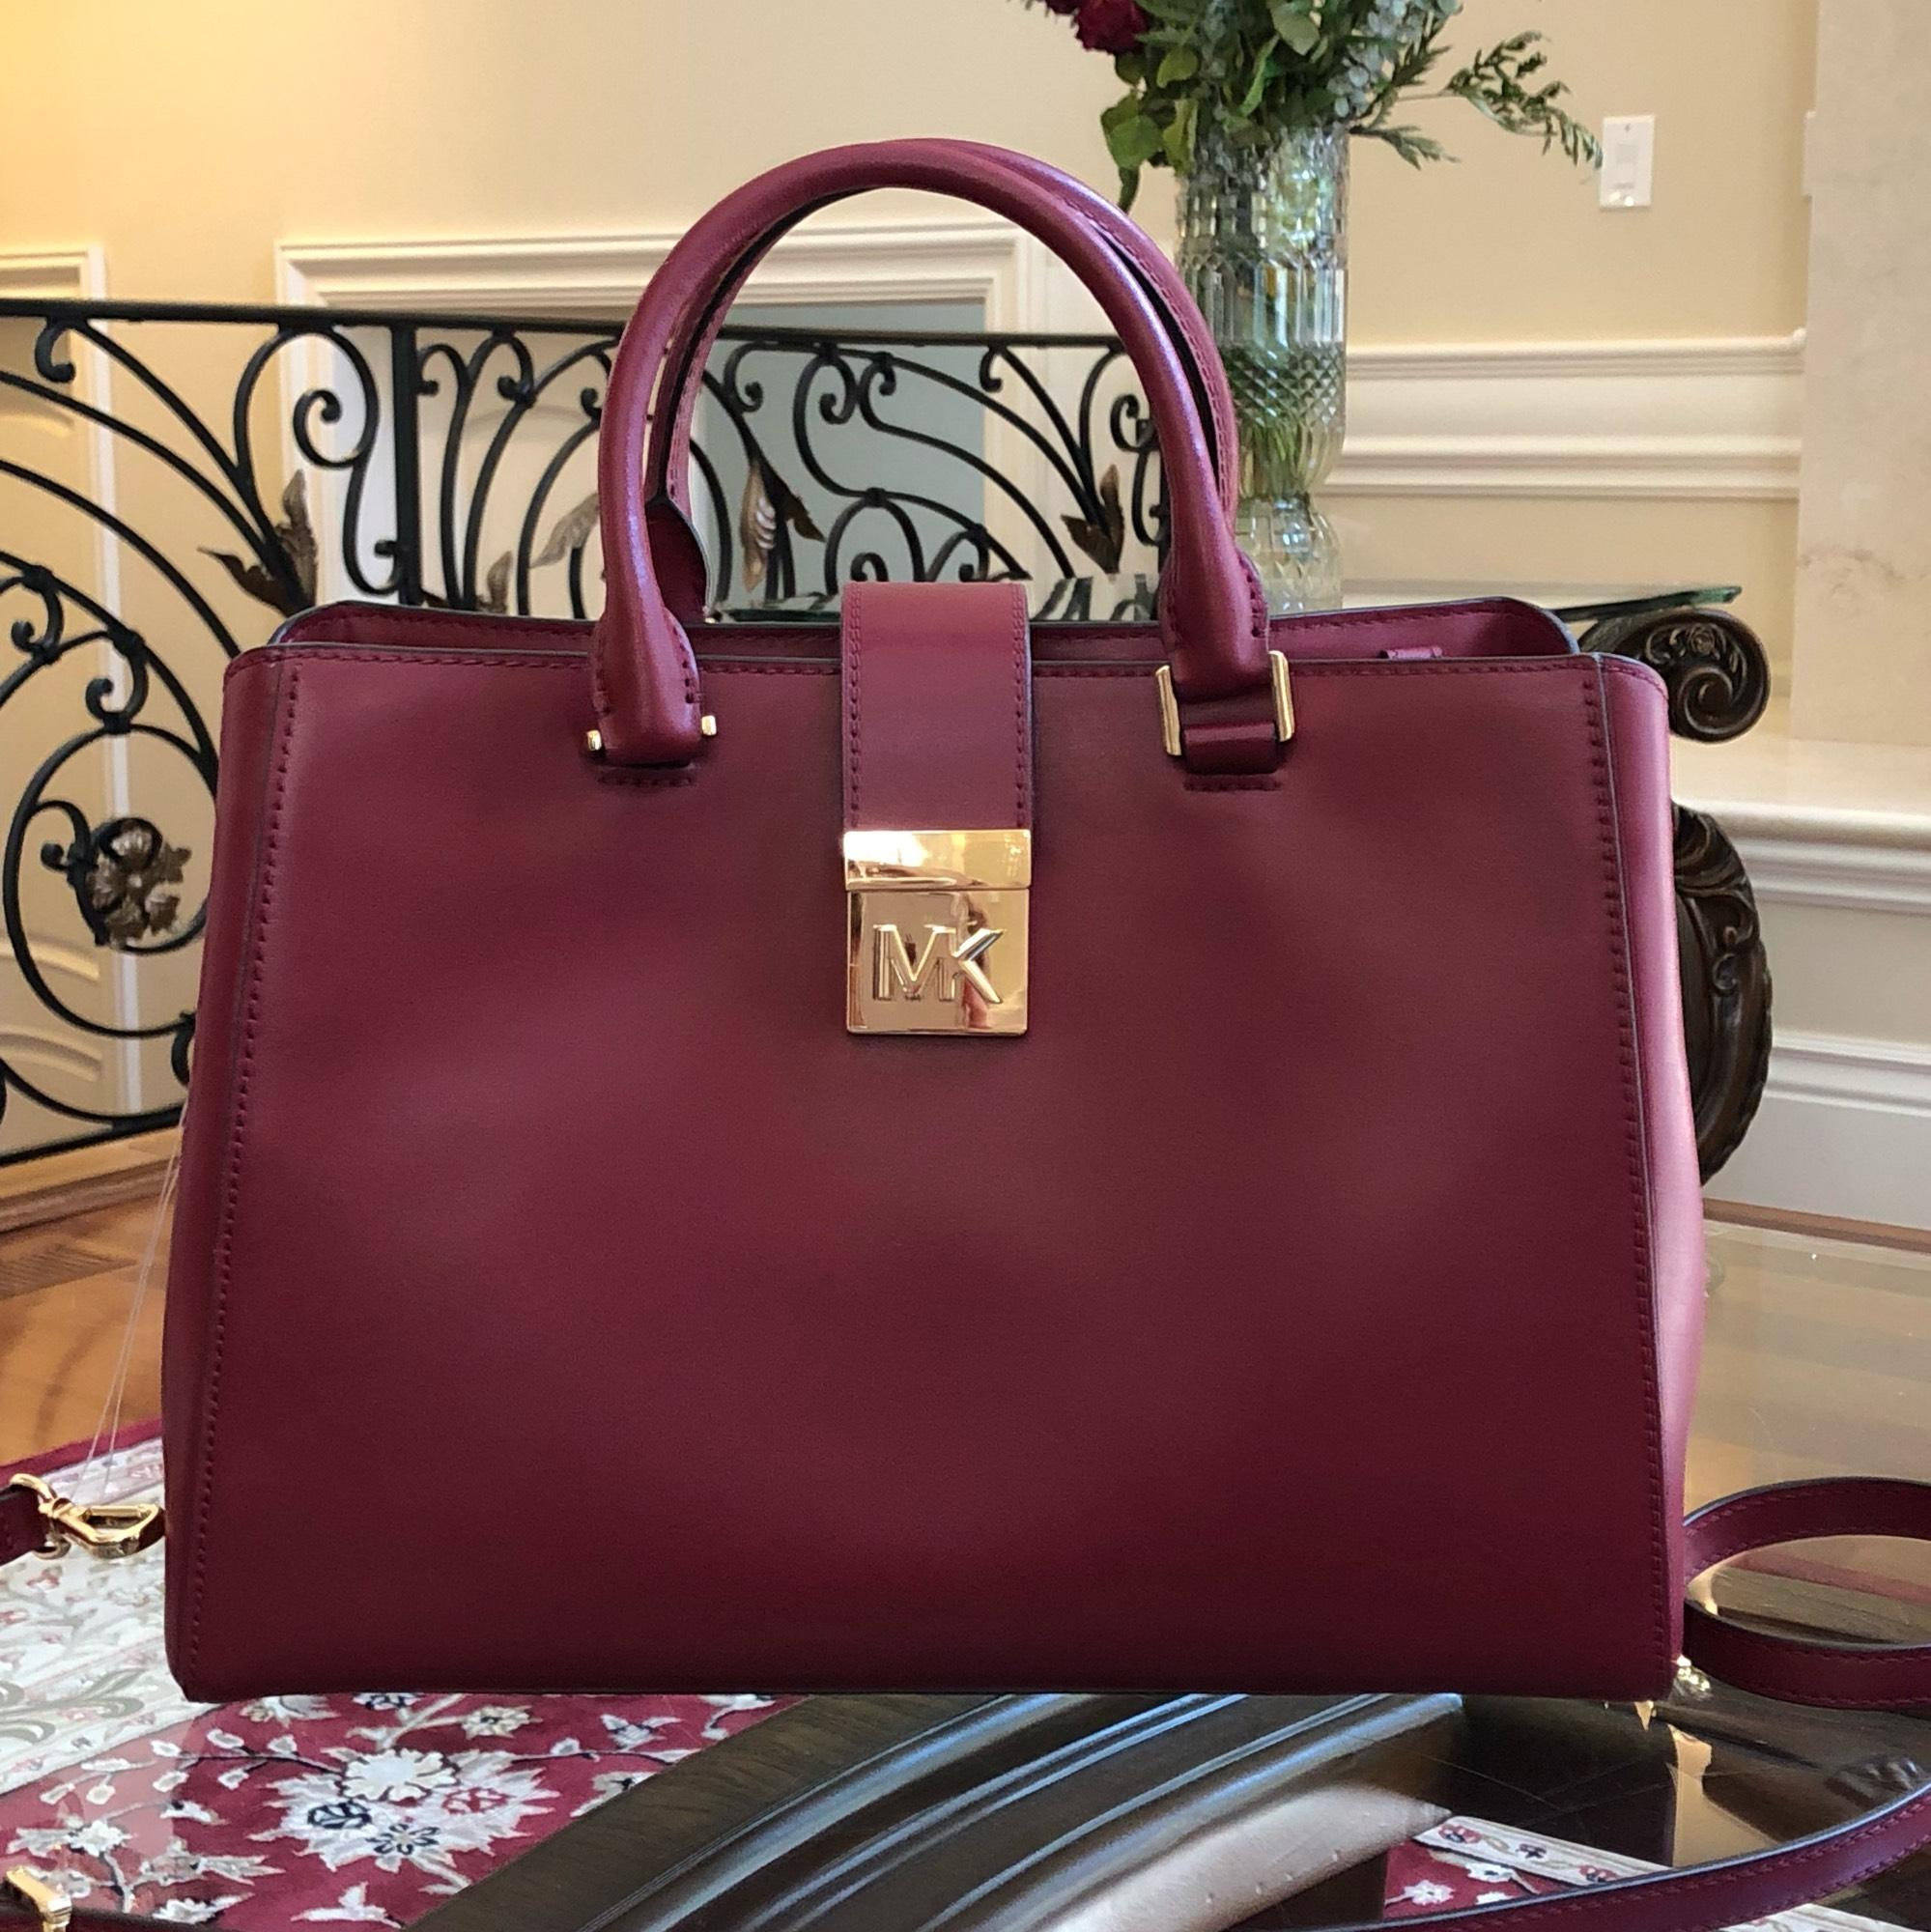 3c6a09b76466 ... canada michael kors mindy md ew crossbody mulberry leather satchel  tradesy 15668 fbde5